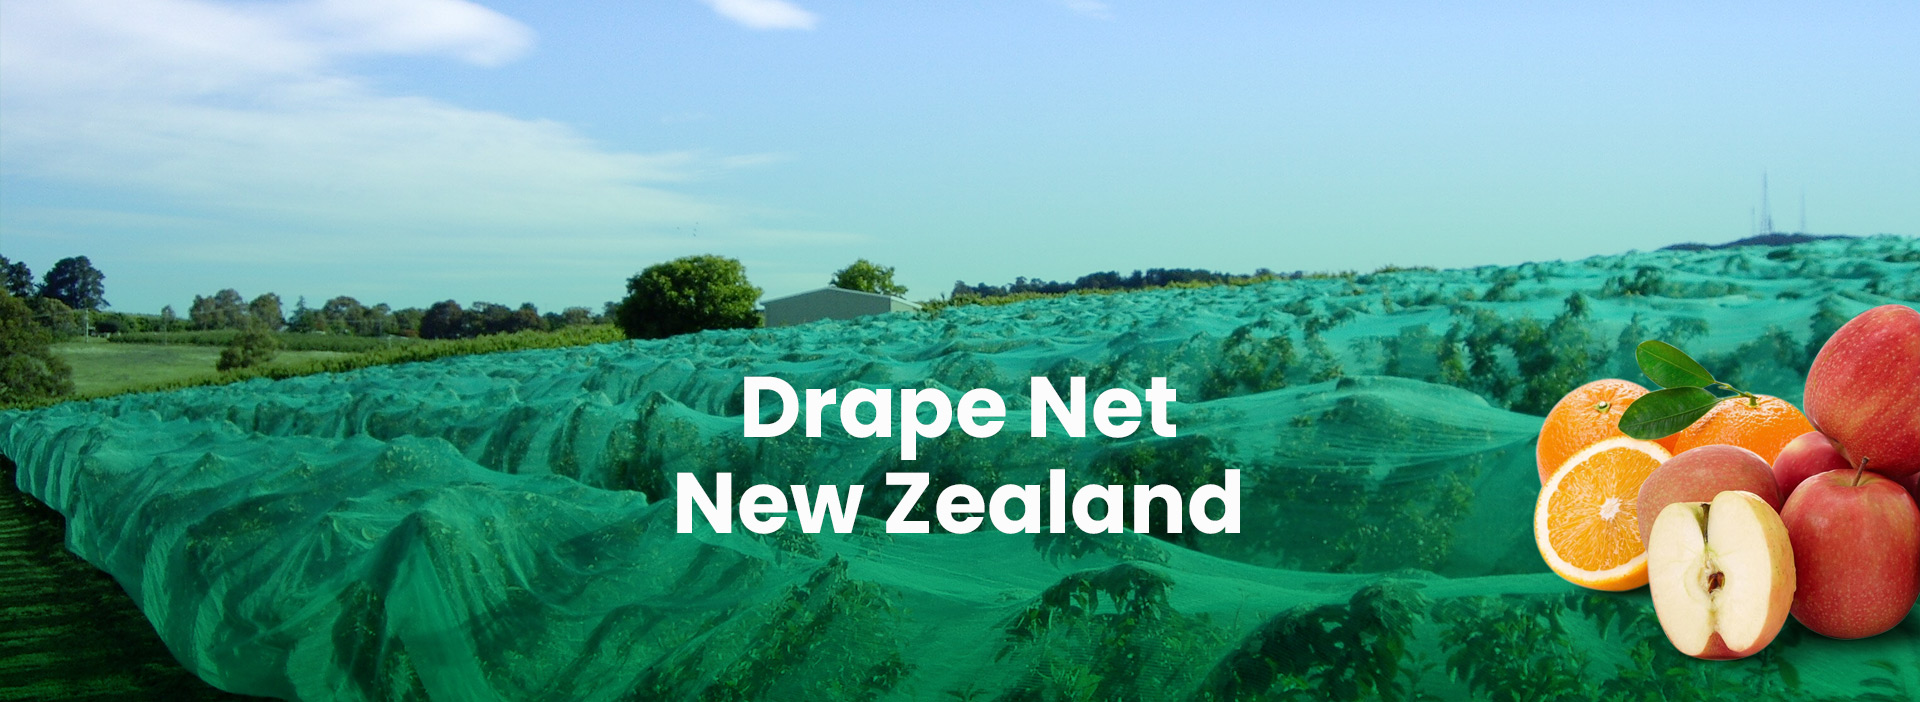 Drape Net New Zealand